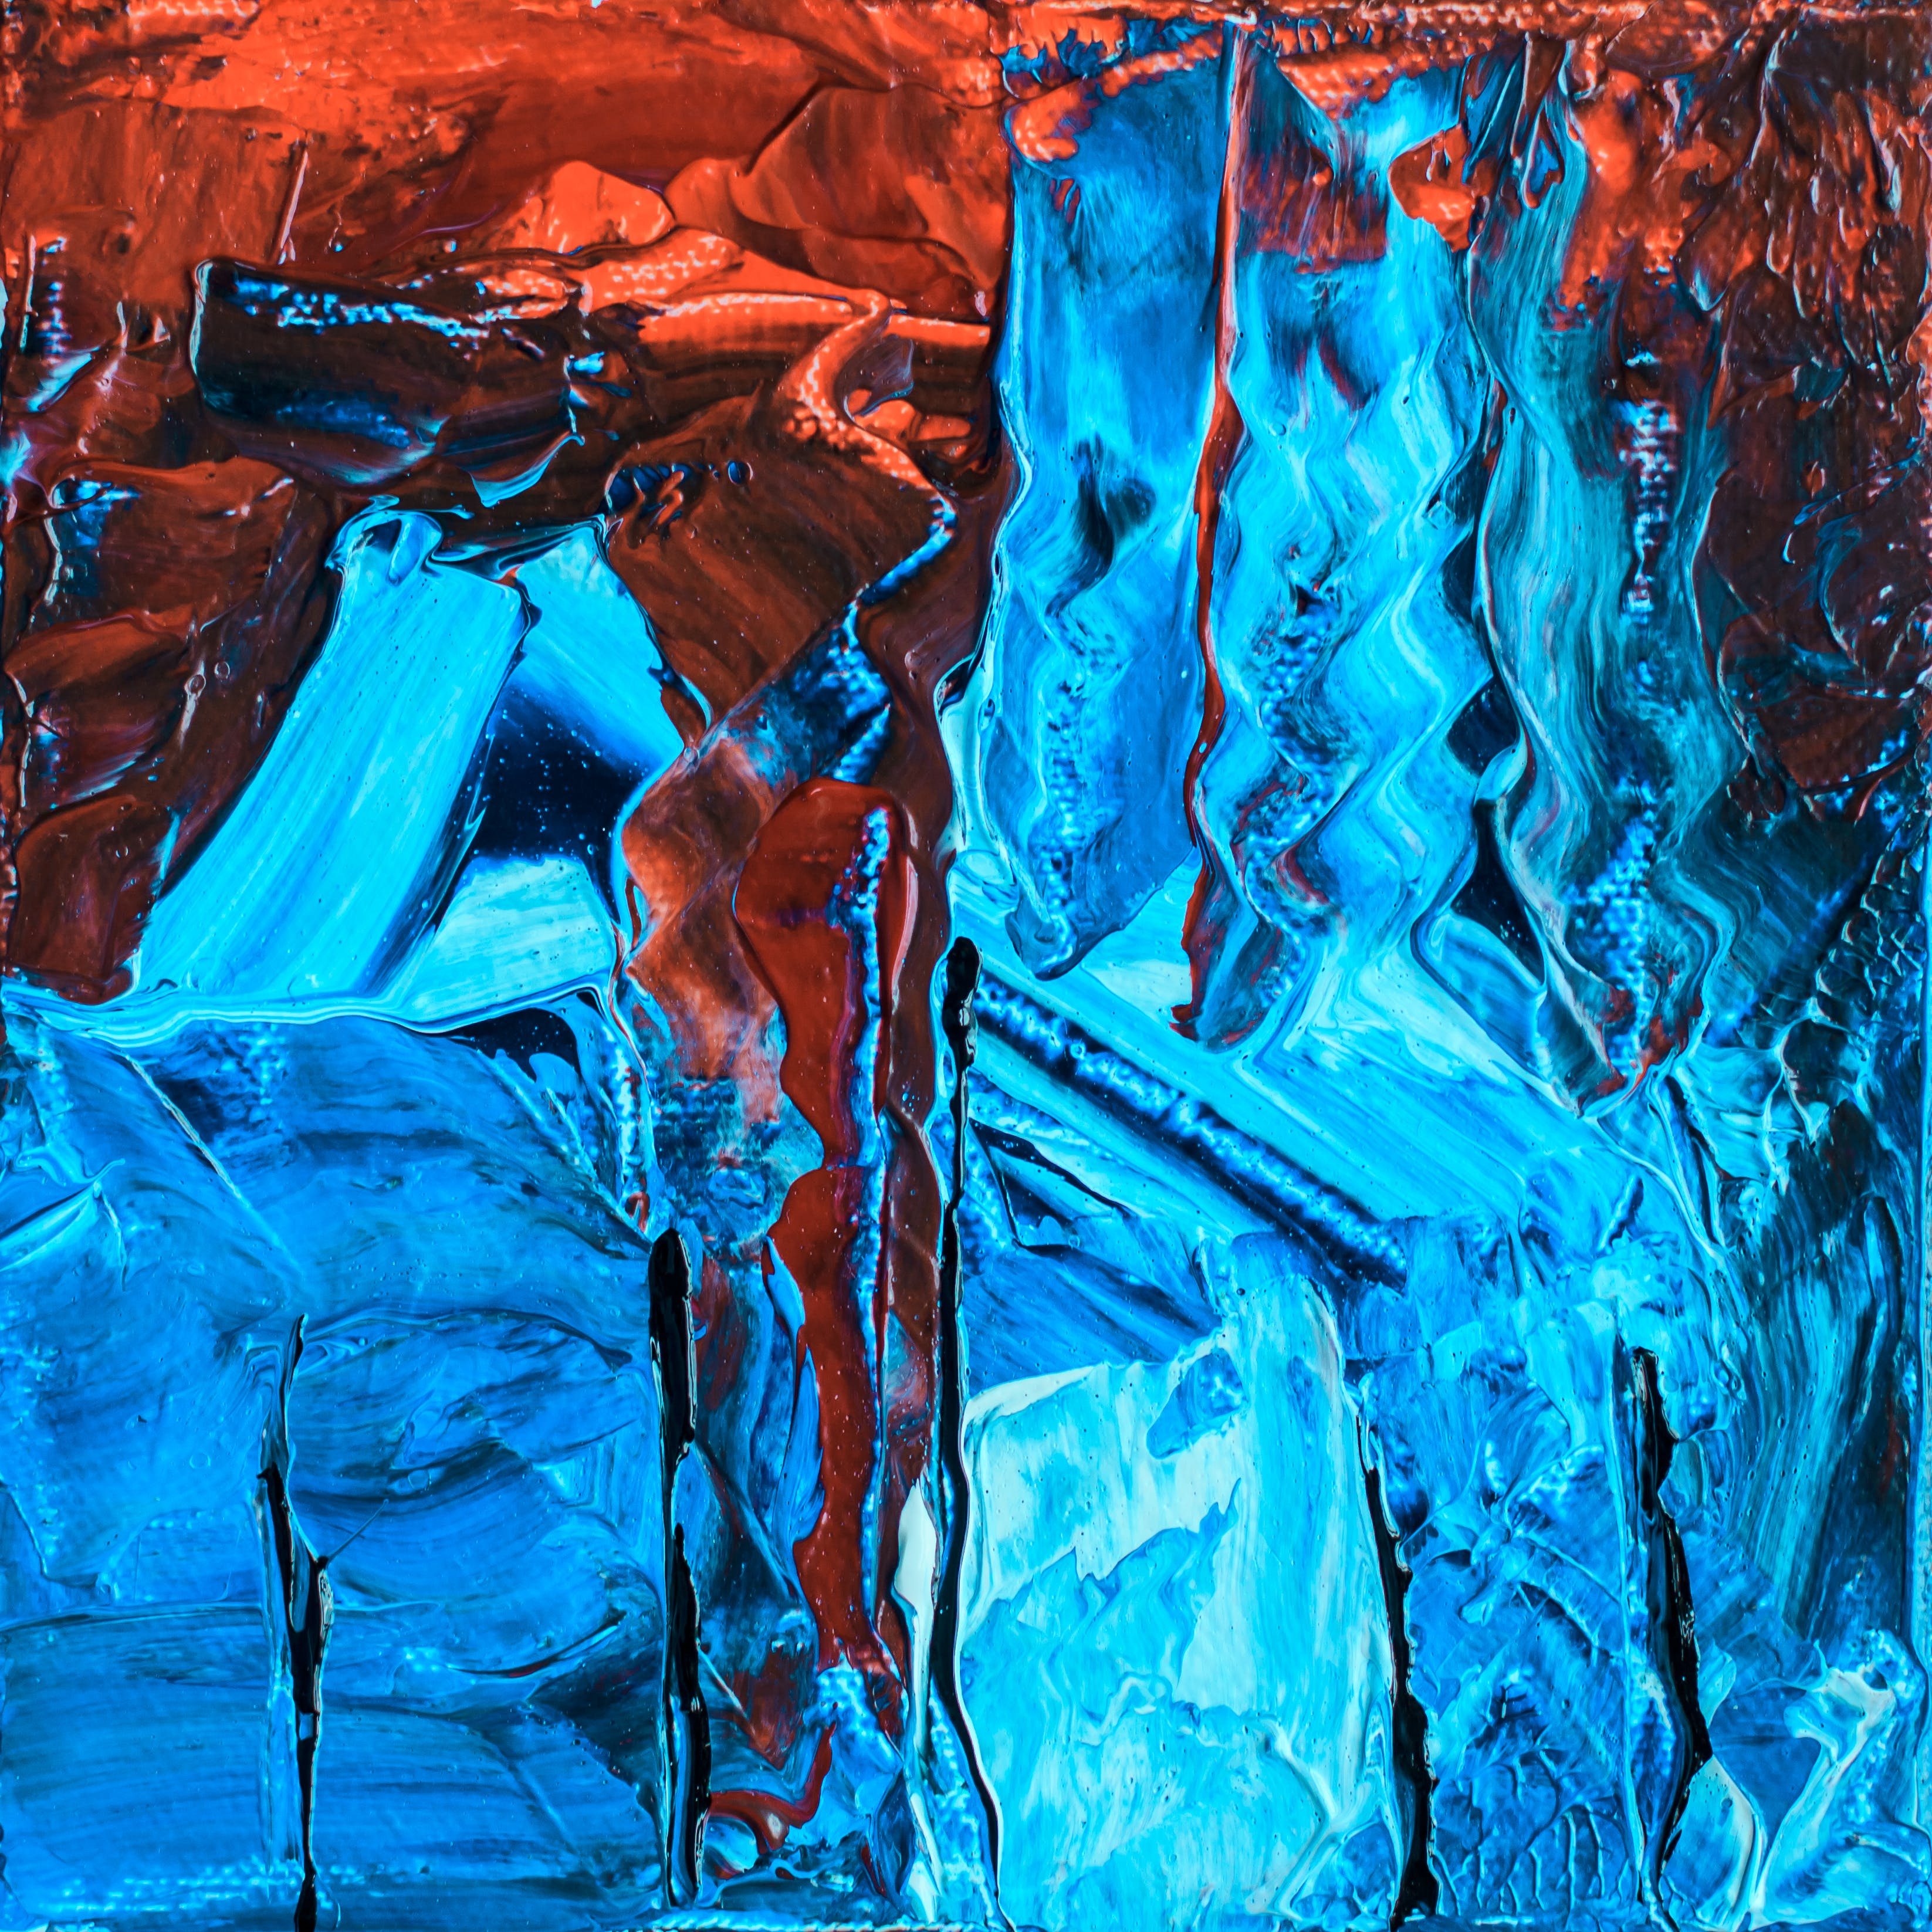 abstract, abstract art, abstract painting